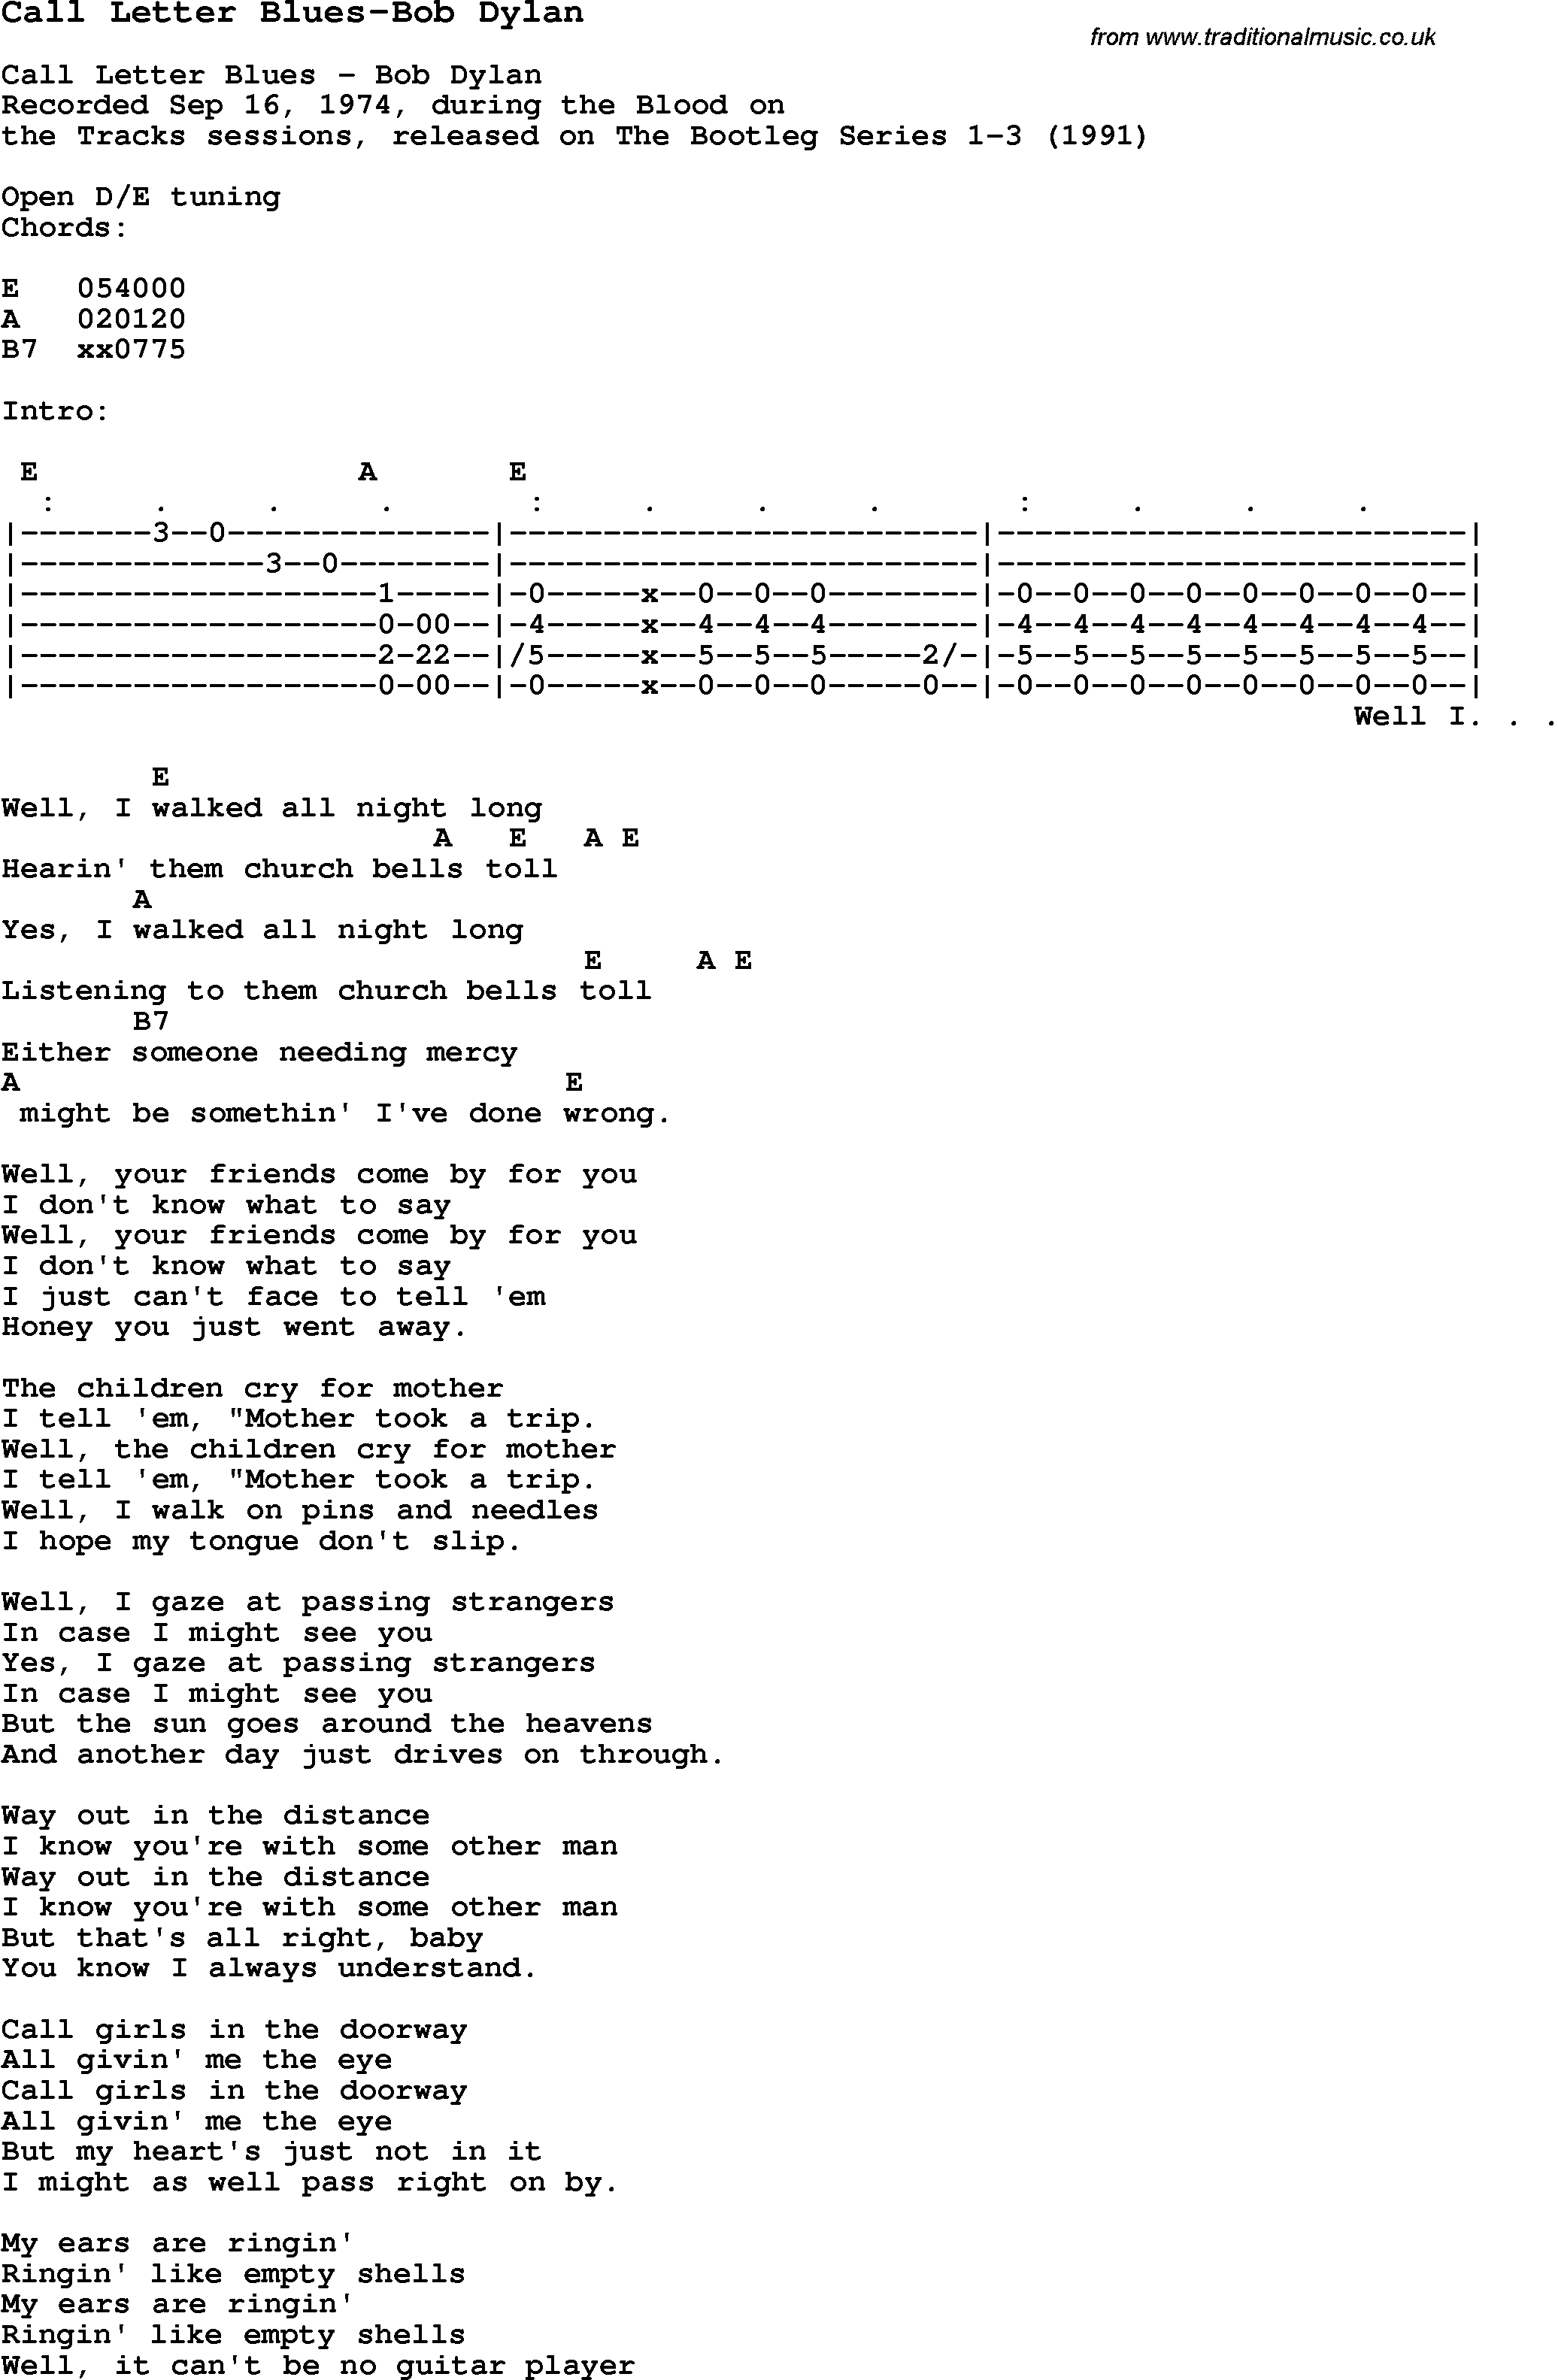 Blues guitar lesson for call letter blues bob dylan with chords blues guitar song lyrics chords tablature playing hints for call letter blues hexwebz Images